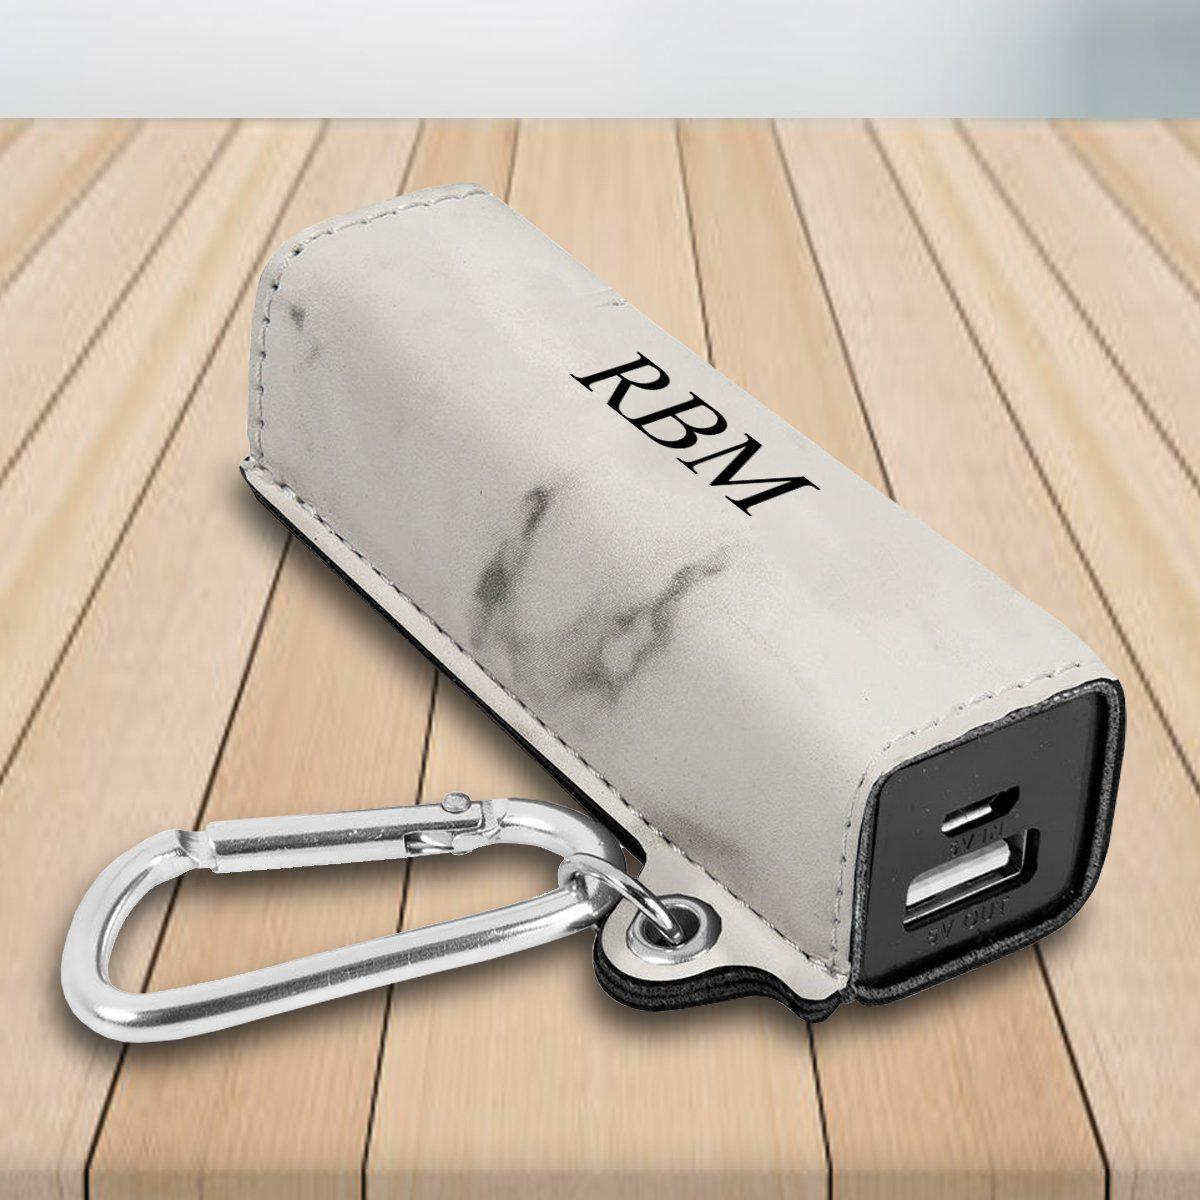 Personalized External Power Bank with USB Cord - Multiple Colors